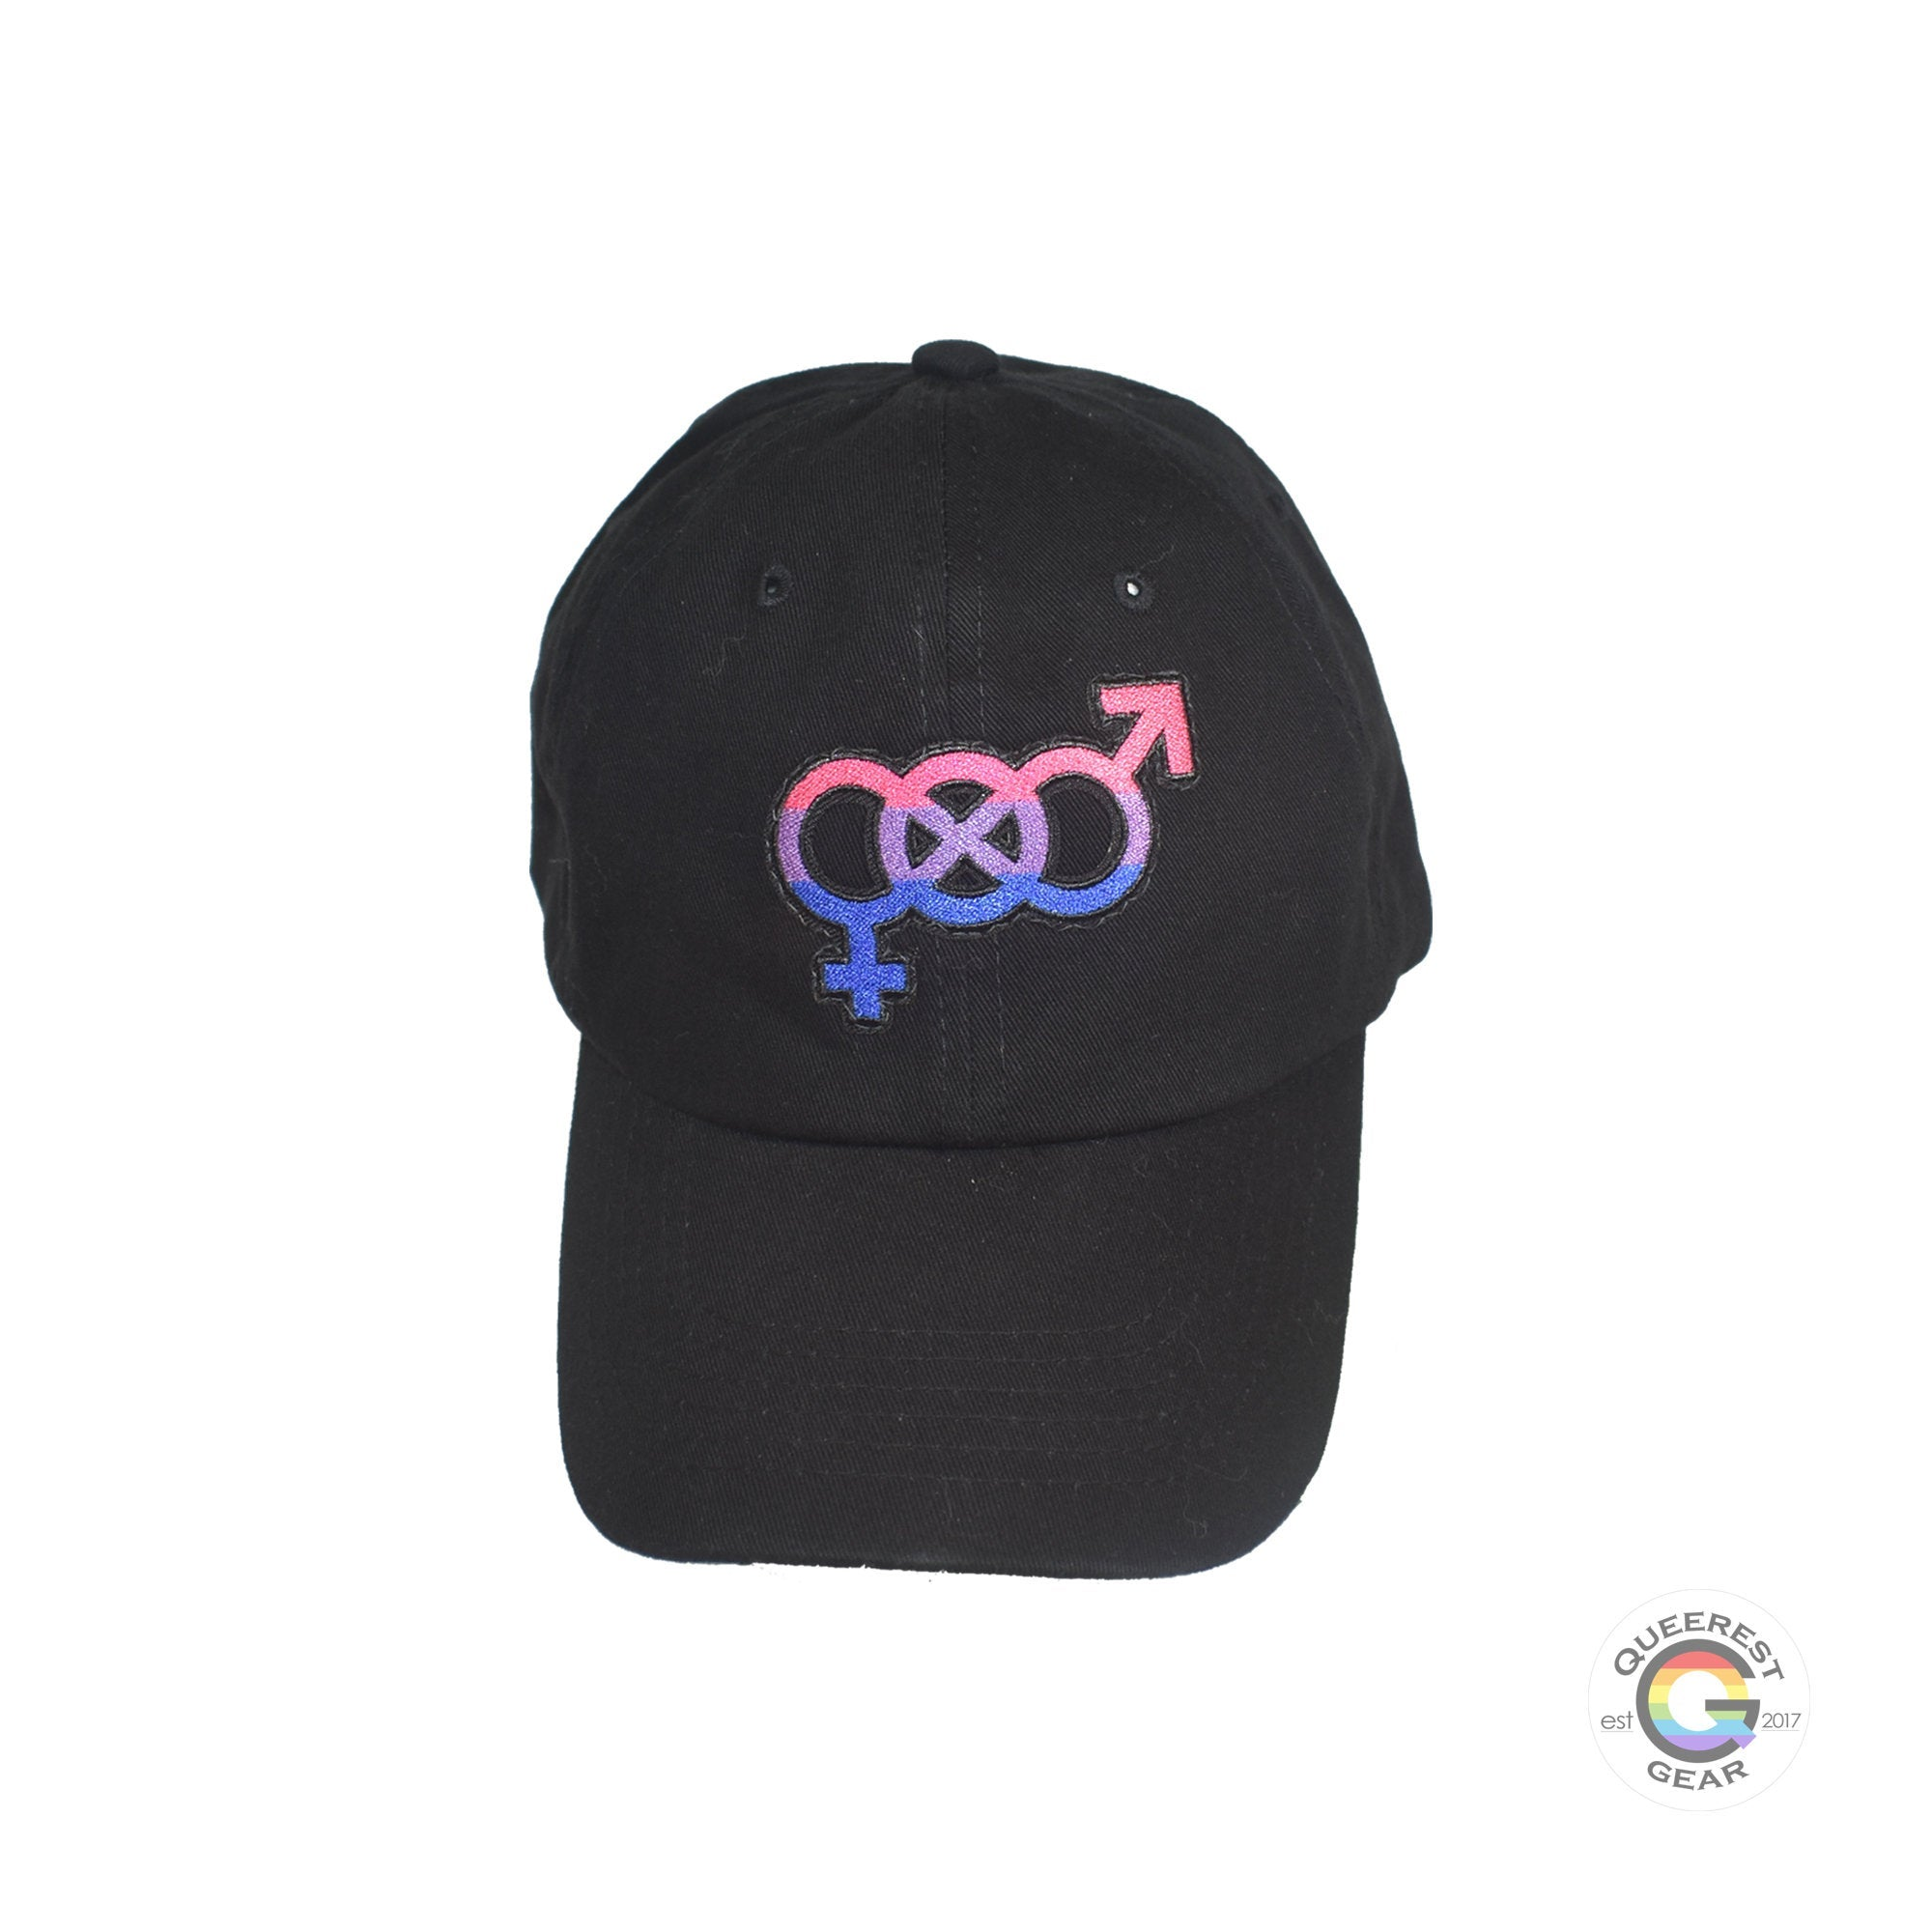 Bisexual Dad Hat